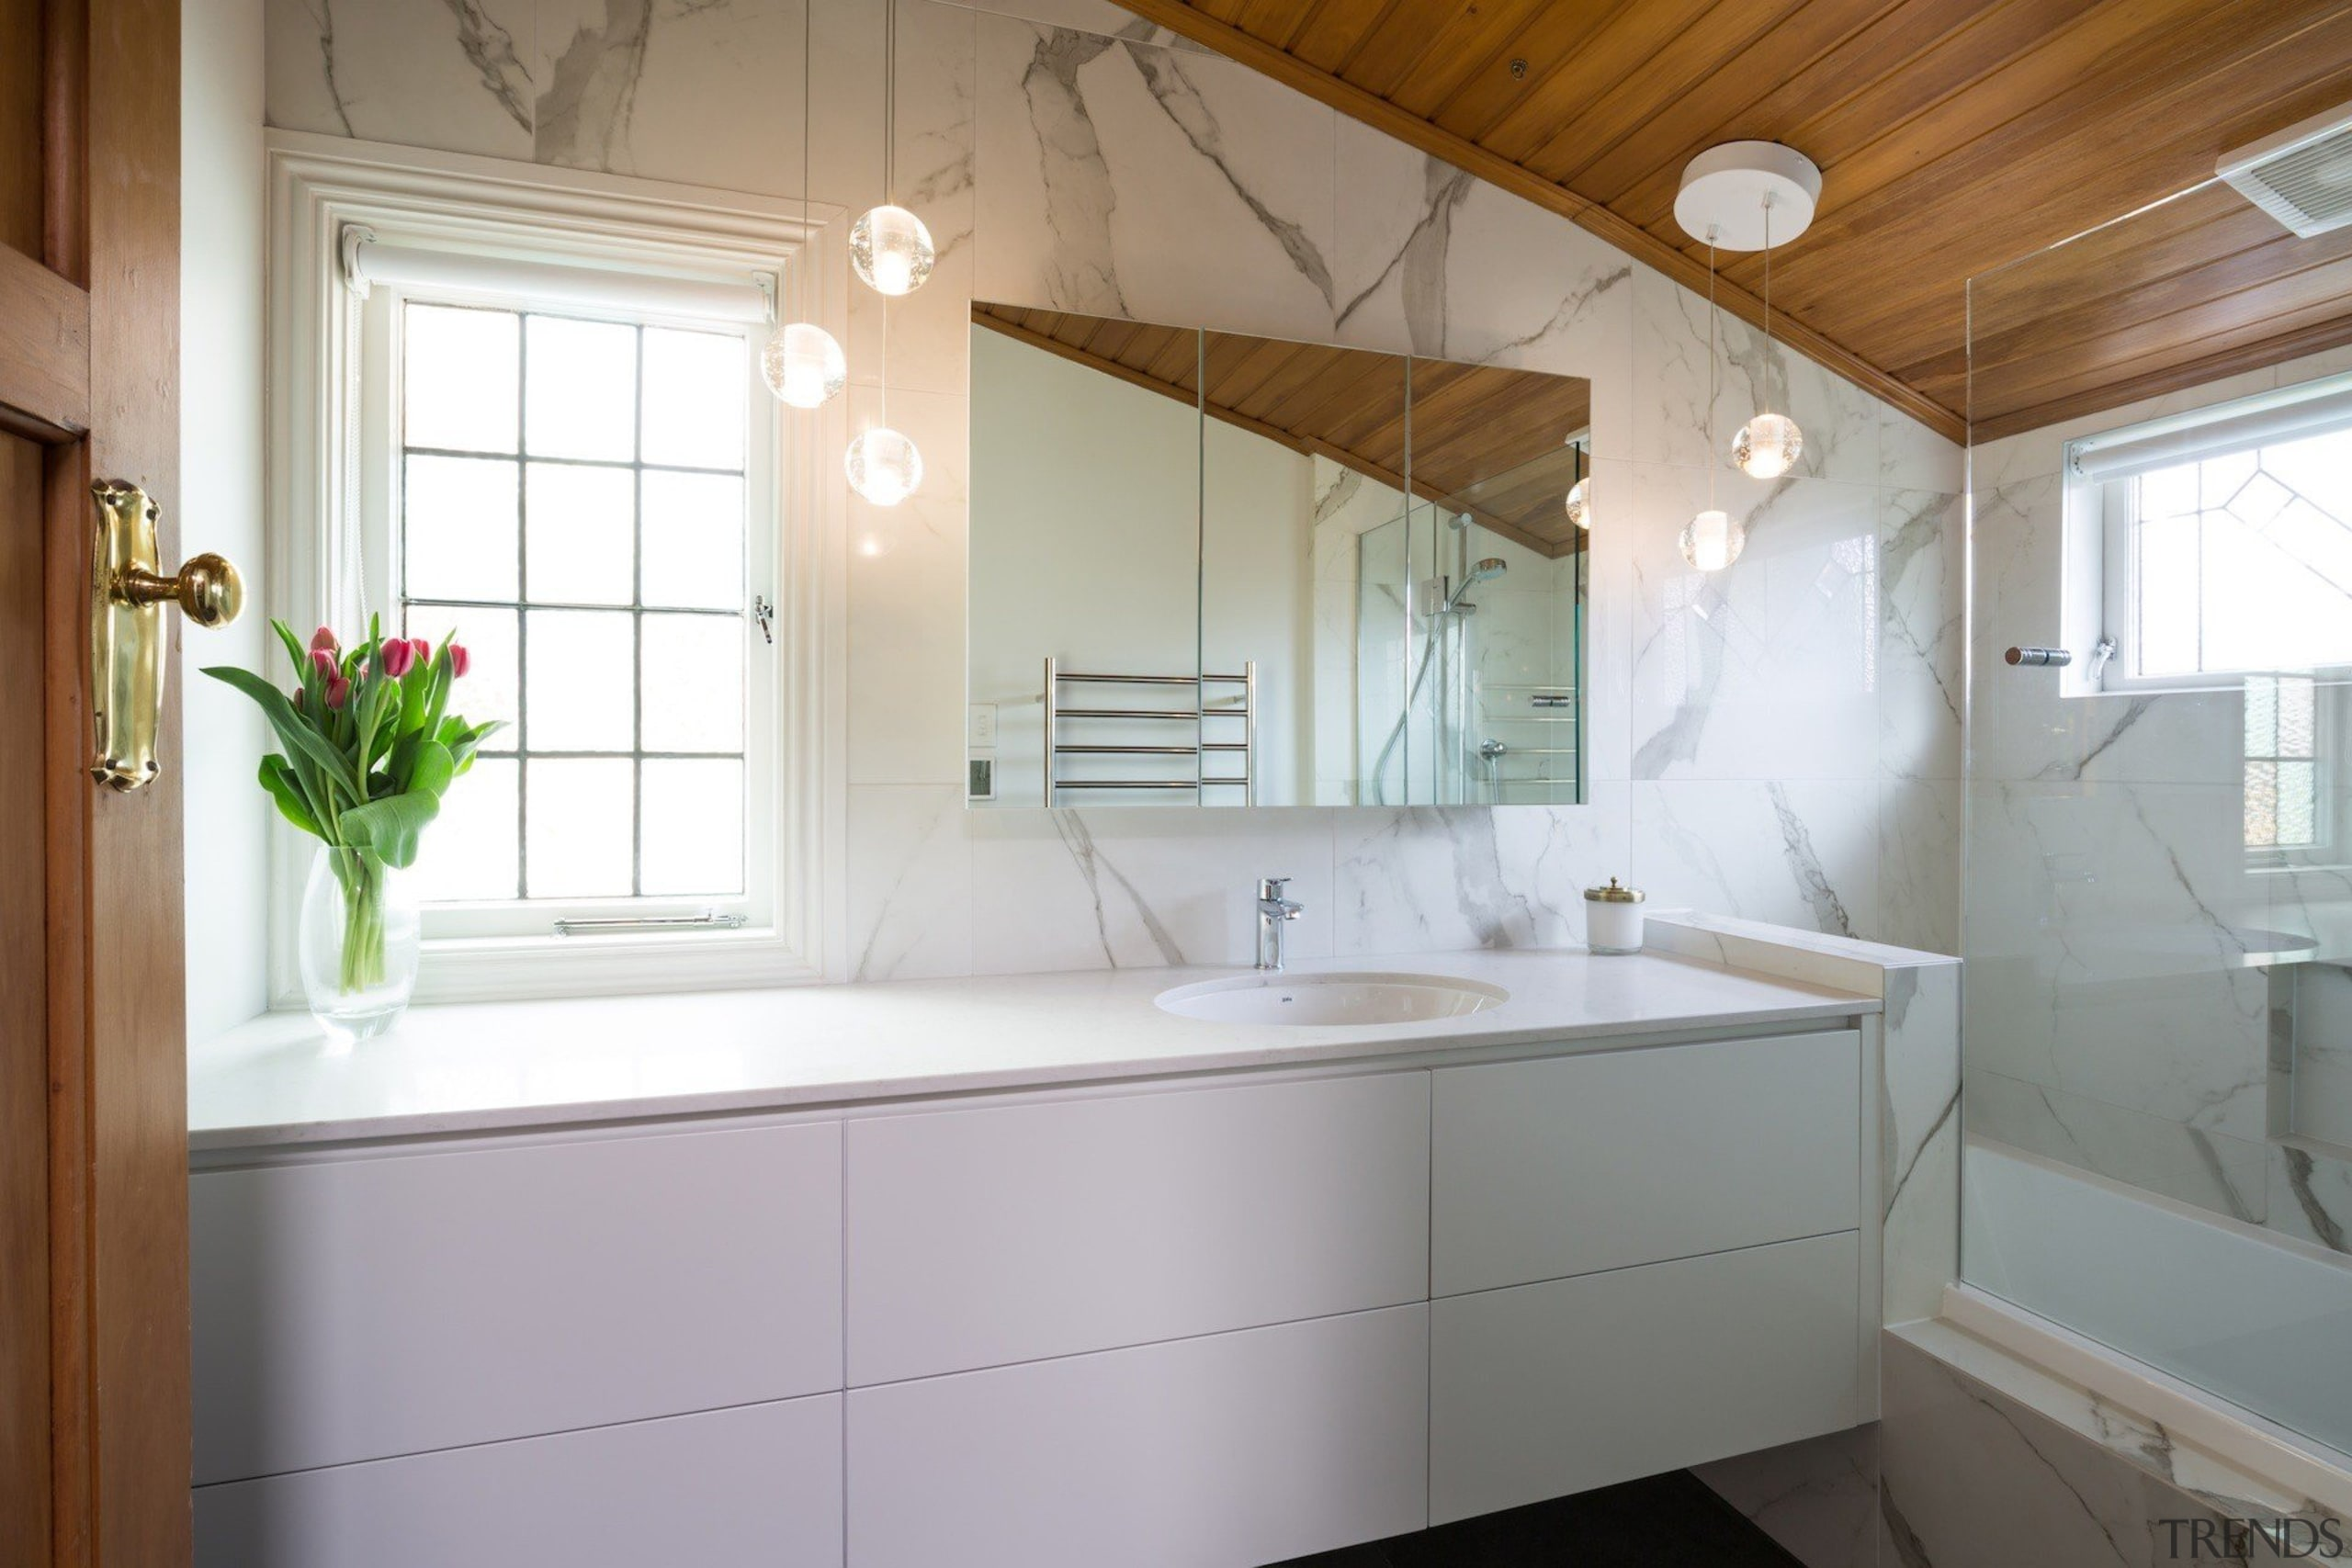 See more from Nicola Manning Design architecture, bathroom, countertop, home, house, interior design, property, real estate, room, sink, window, gray, white